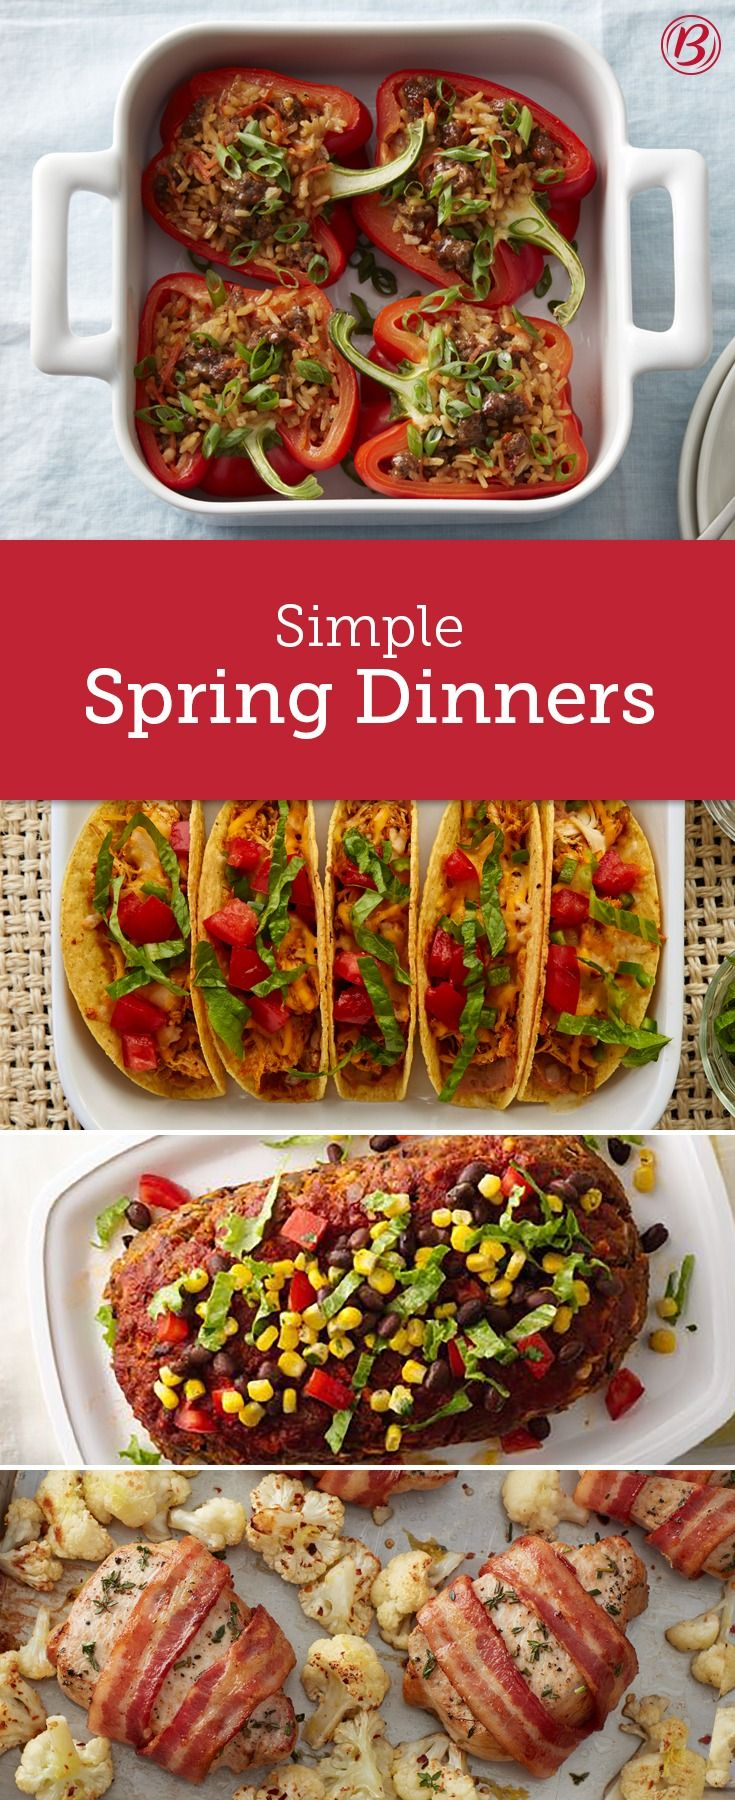 Spring is here—time to freshen up your dinner menu! These 12 dinners are perfect for when you're craving something a little bit lighter but don't want to skimp on taste. Chicken tacos, sheet-pan salmon and zesty meatloaf are just a few of these springtime suppers you need to try!